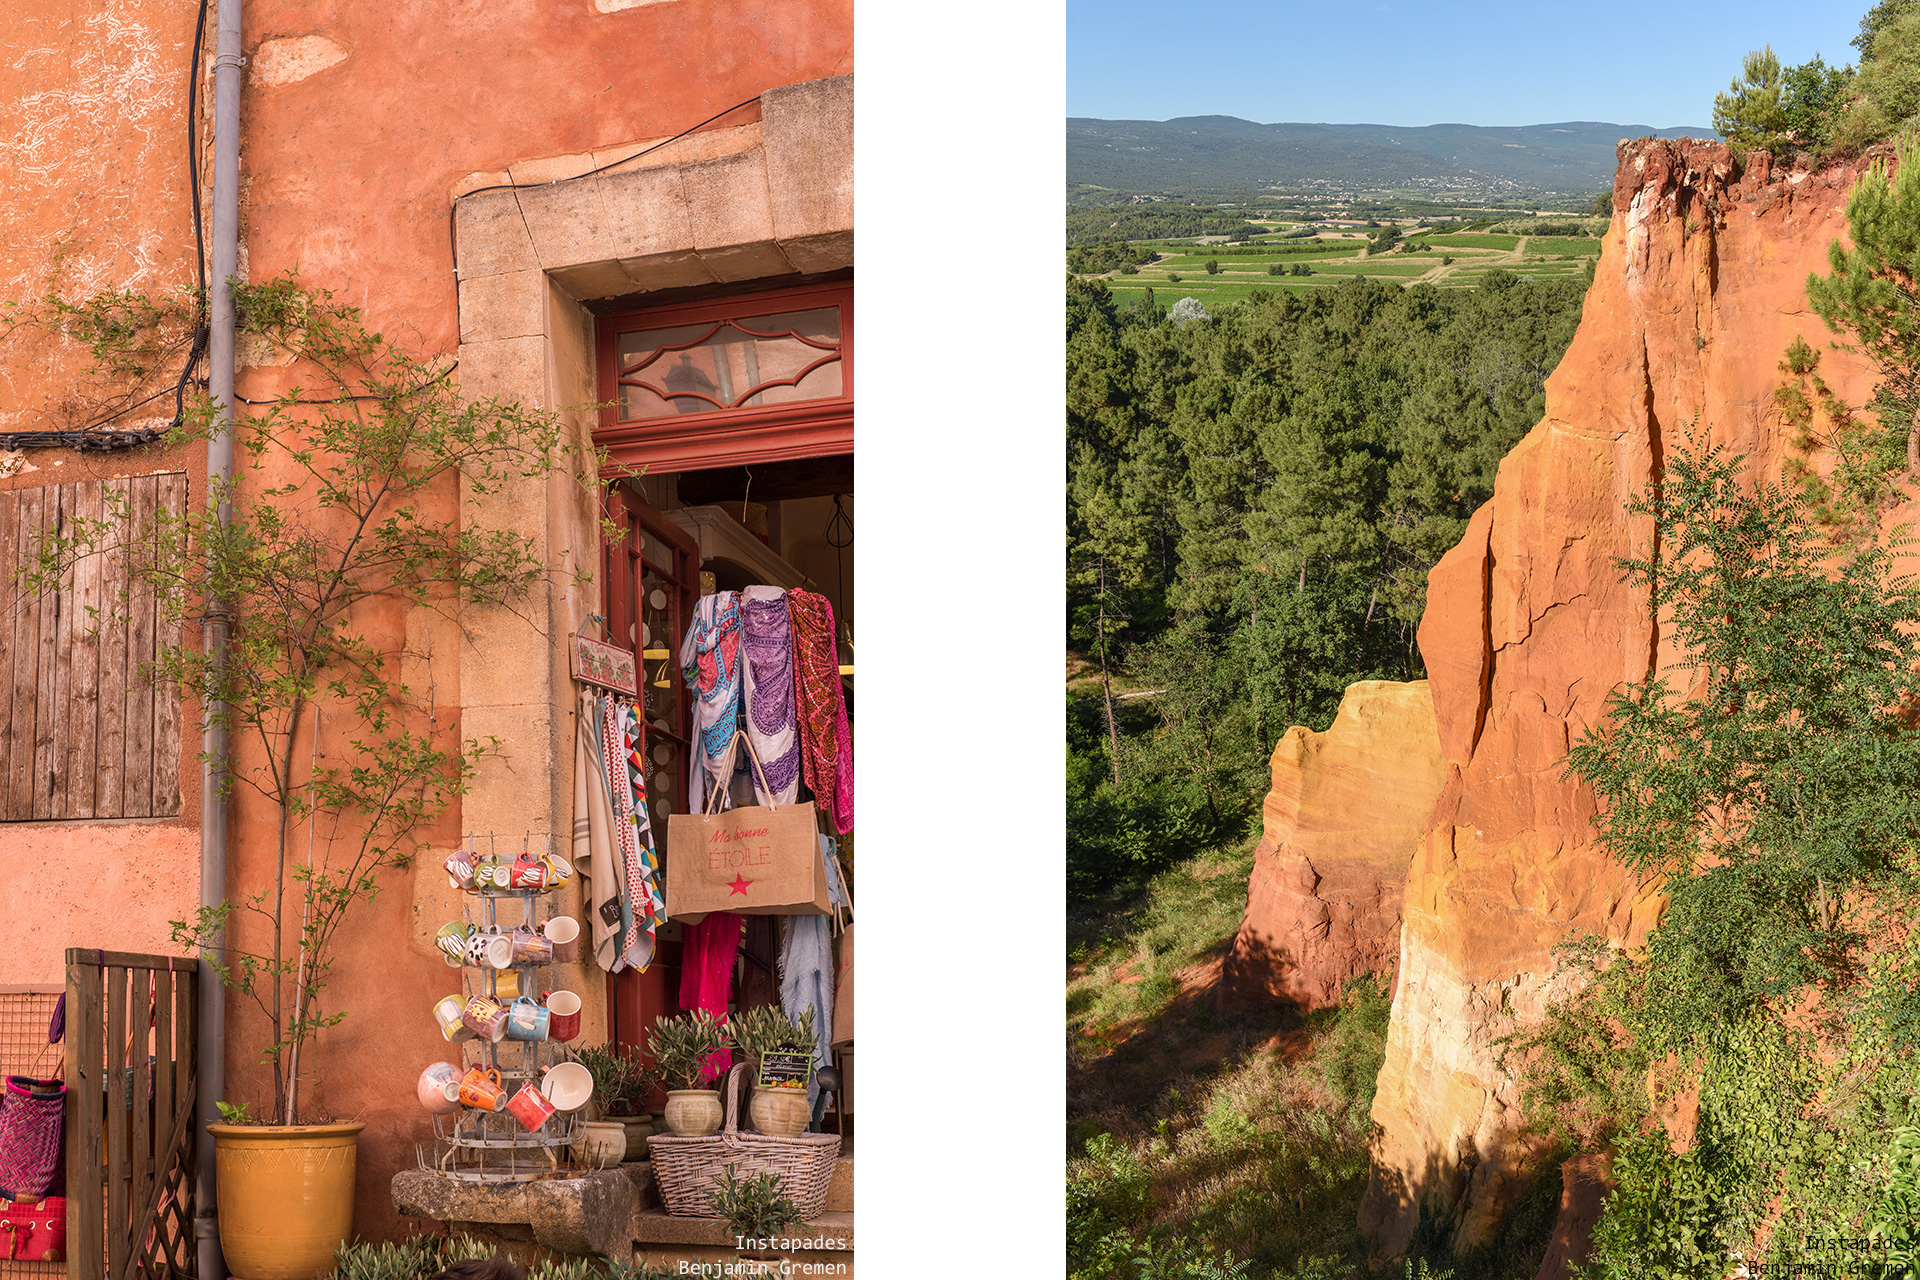 roussillon-commerce-falaise